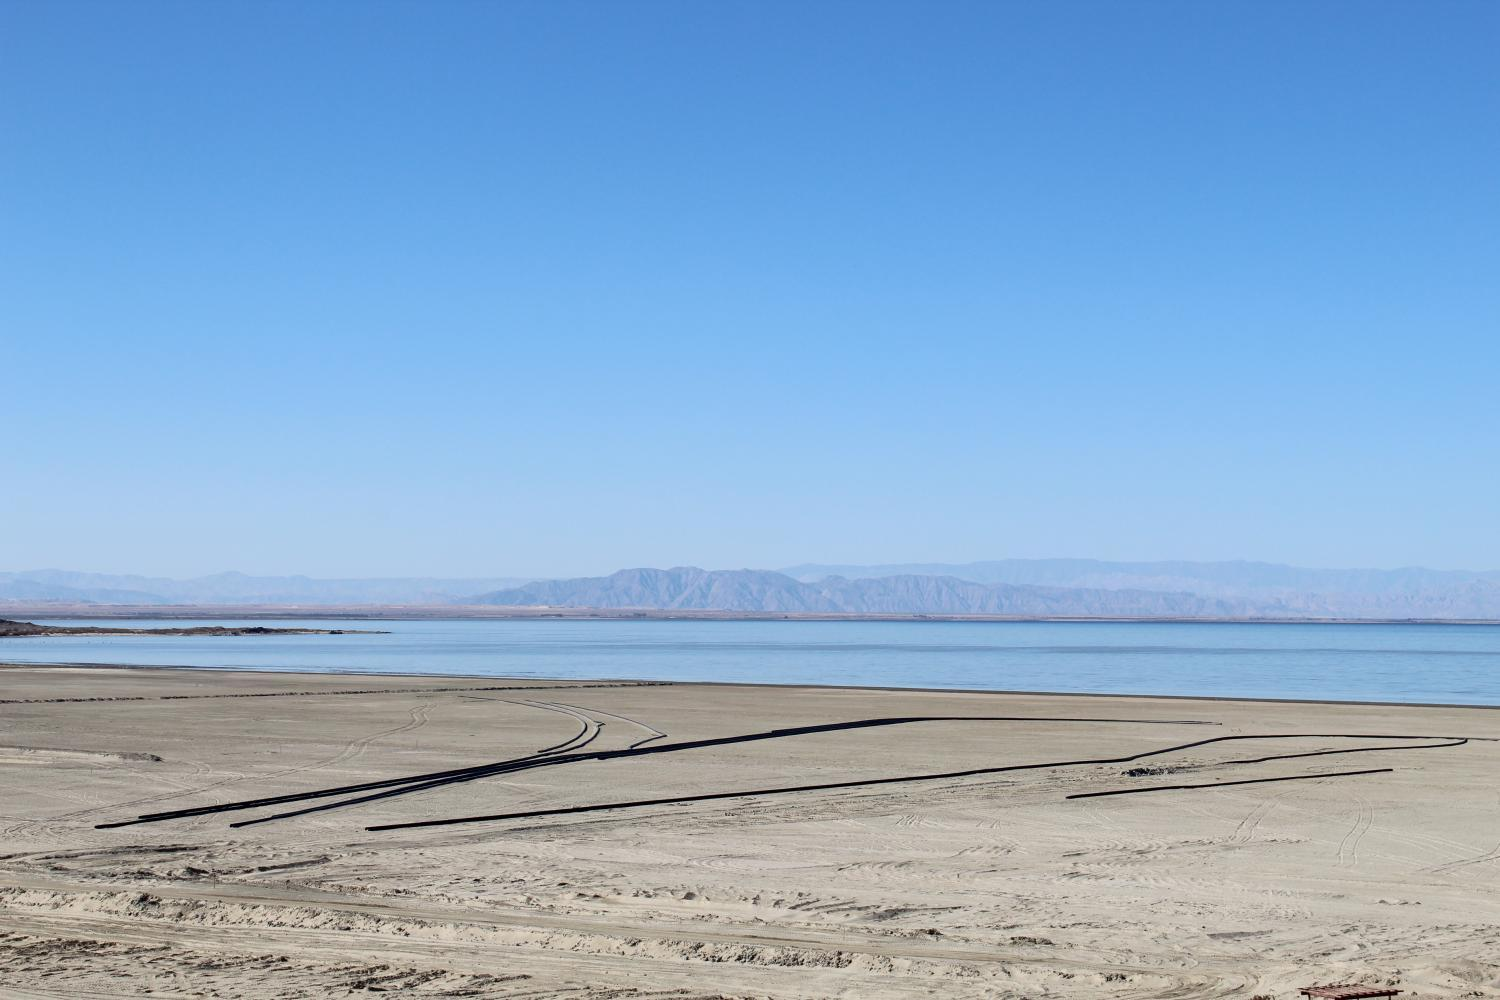 a good stretch of sand and a large body of water with mountains beyond that